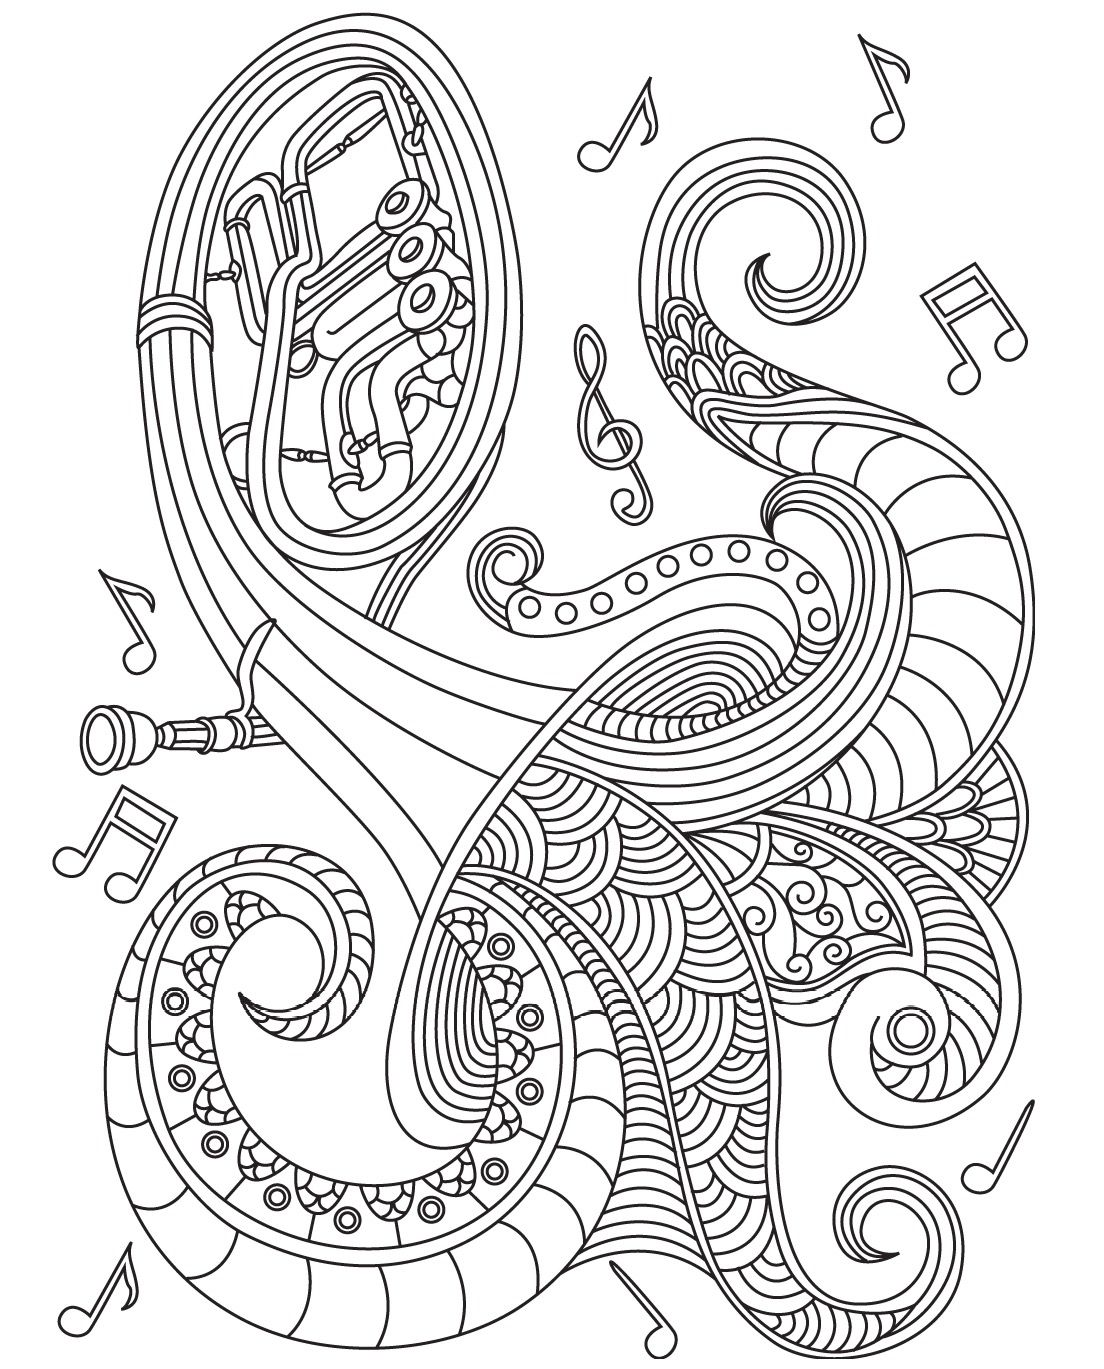 Musical Instrument Colorish coloring book for adults